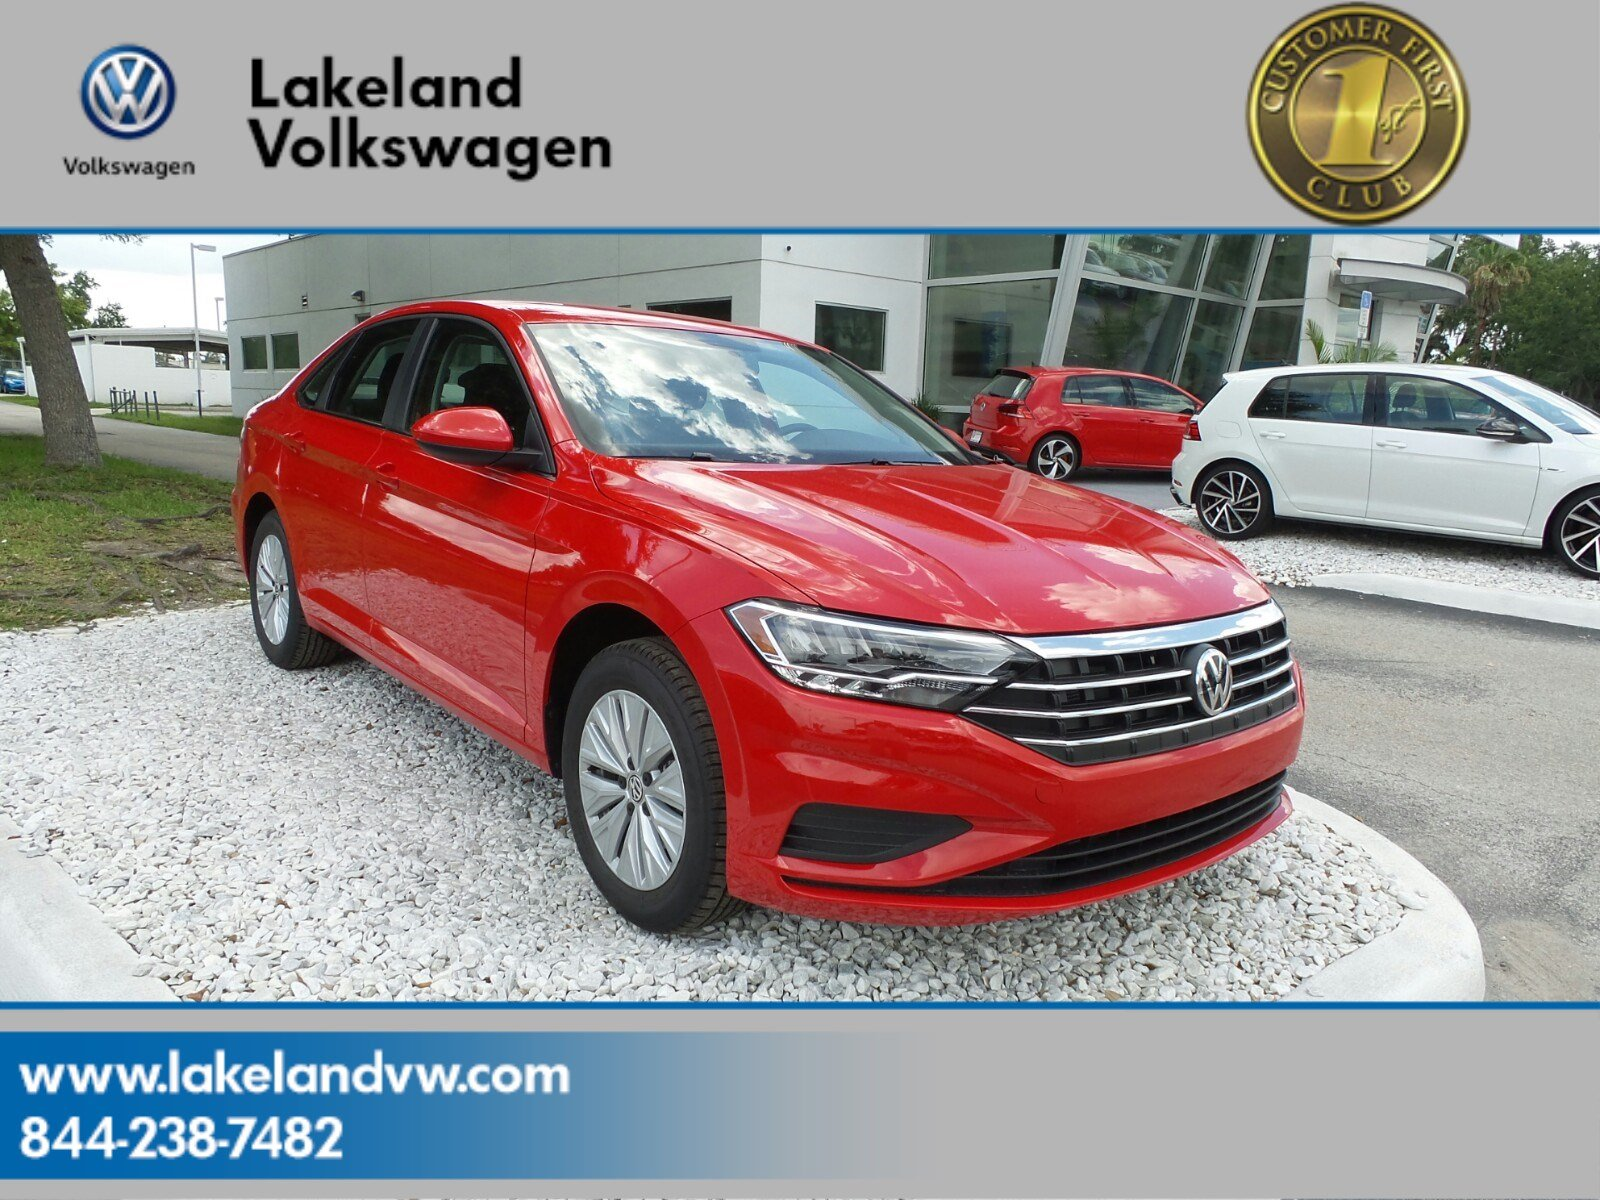 lakeland volkswagen inventory in gti new fwd se golf hatchback